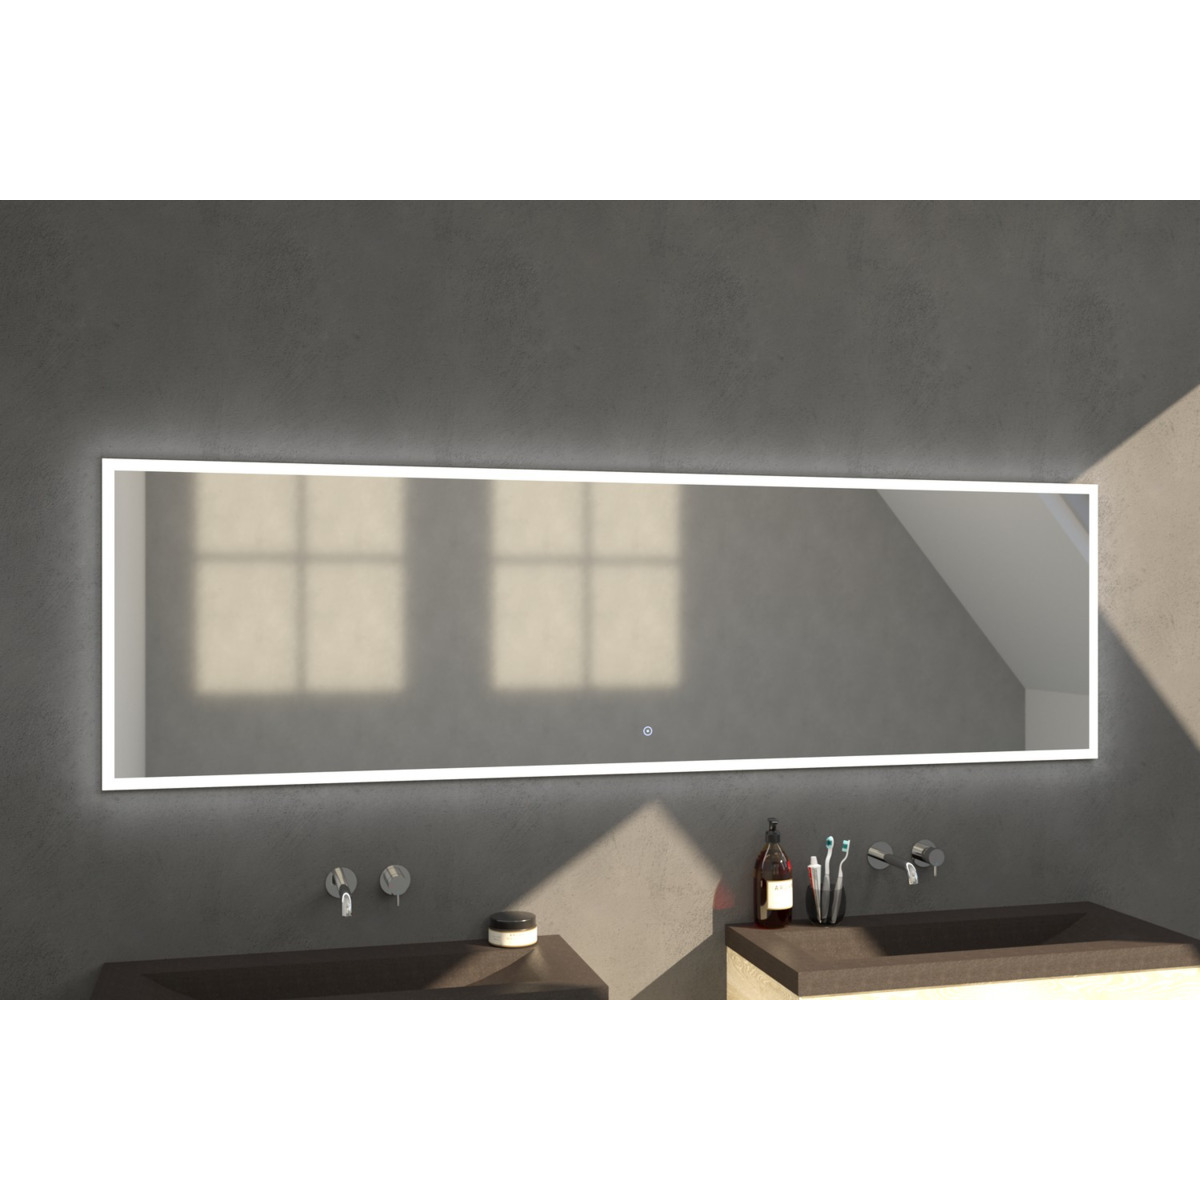 saniclass edge miroir avec clairage led 240x70cm. Black Bedroom Furniture Sets. Home Design Ideas